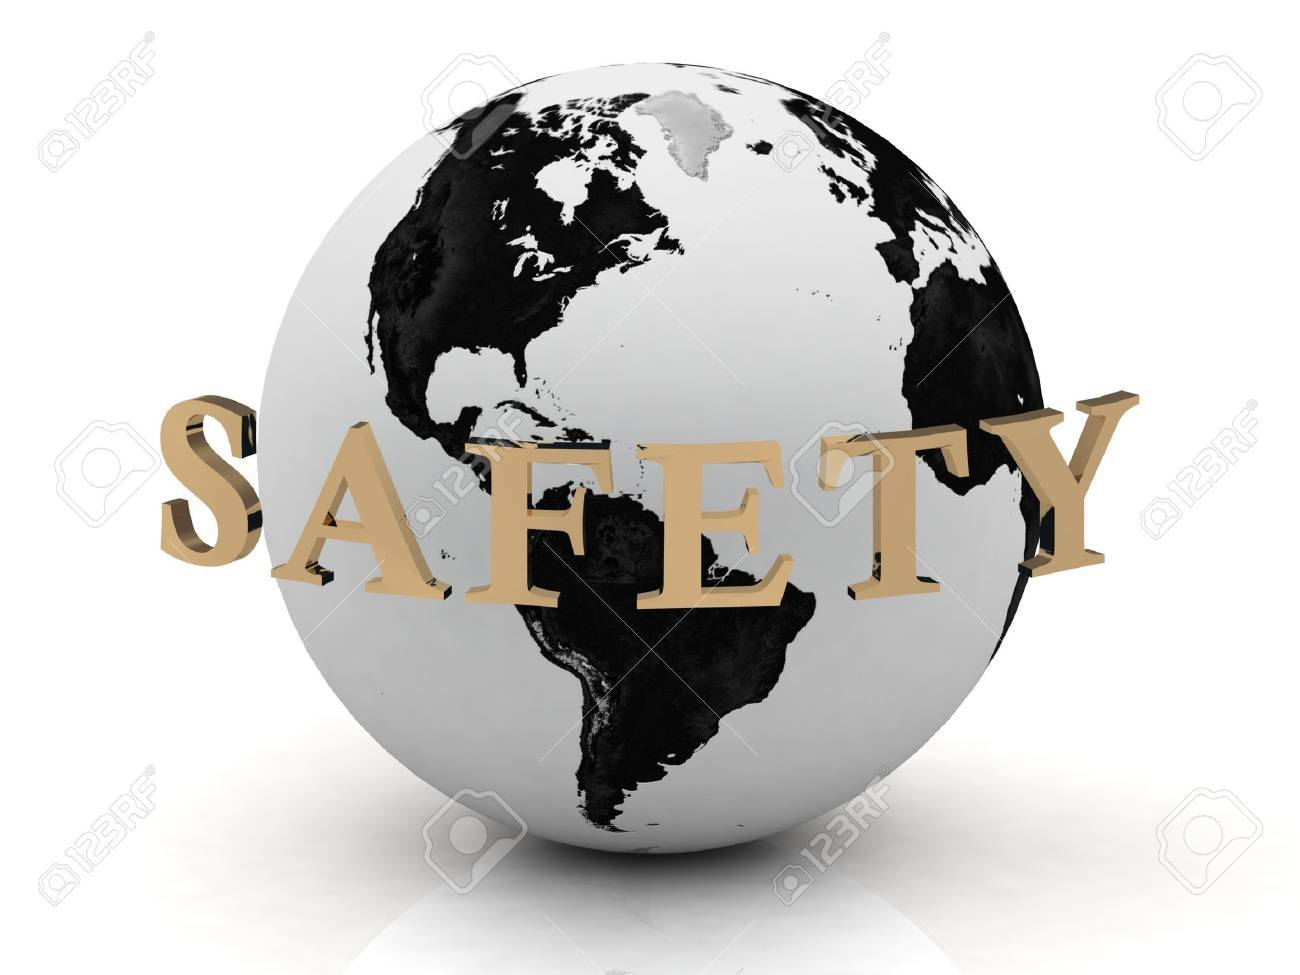 SAFETY abstraction inscription around earth on a white background Stock Photo - 14619088